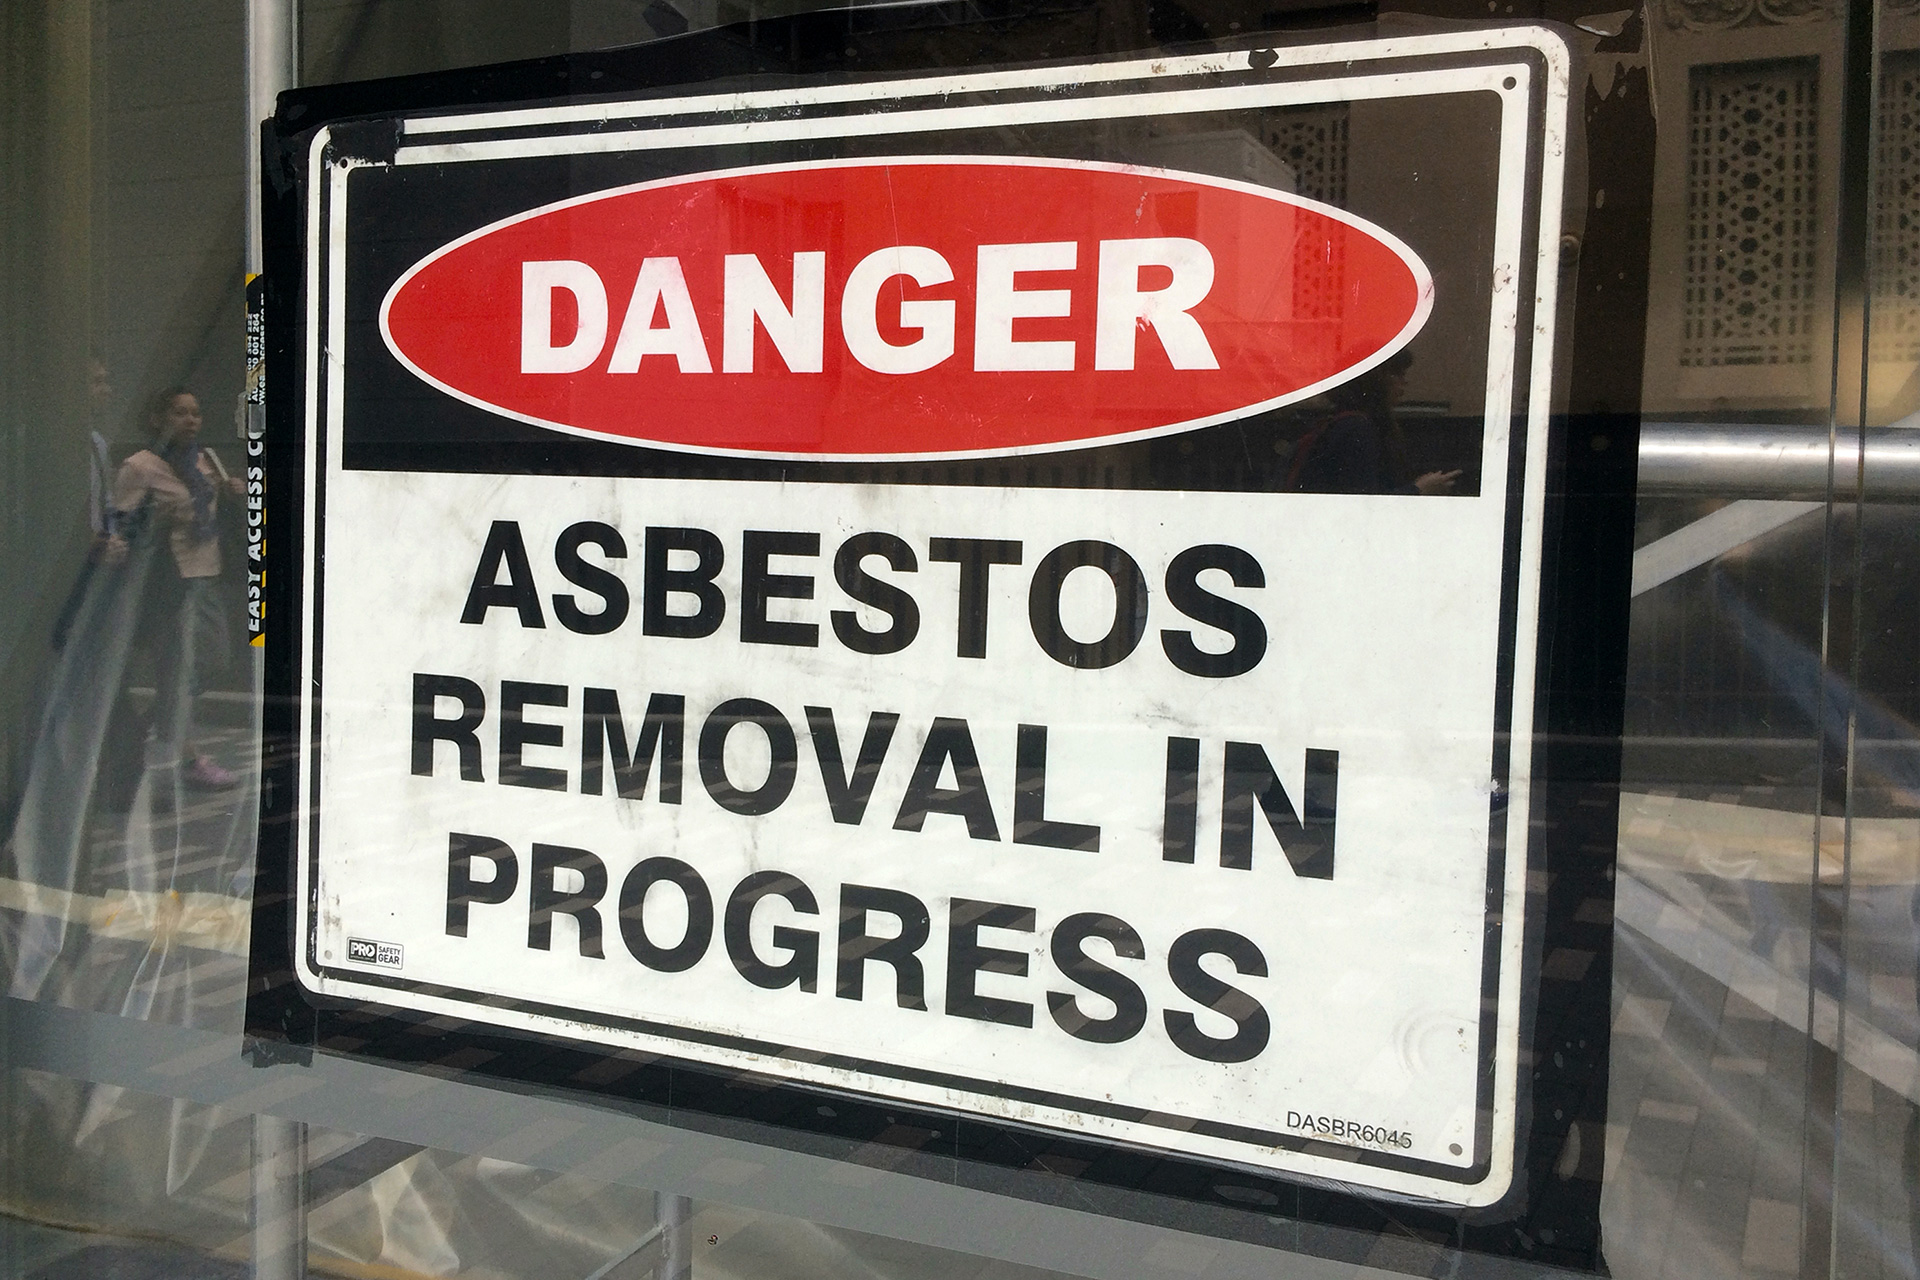 Asbestos Initial Training And Certification Classes In